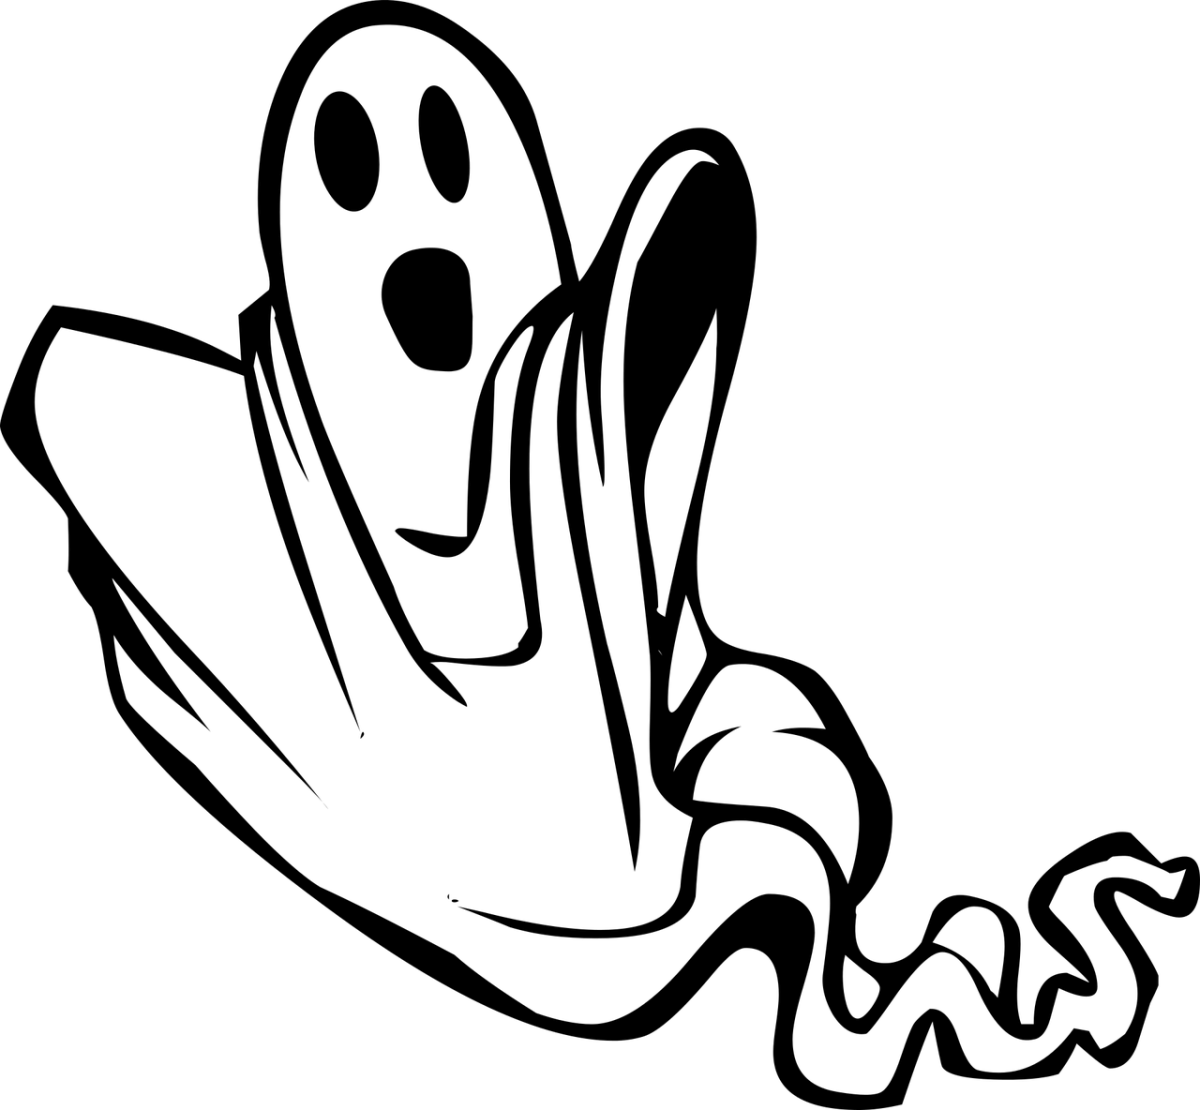 Clipart image of a ghost.